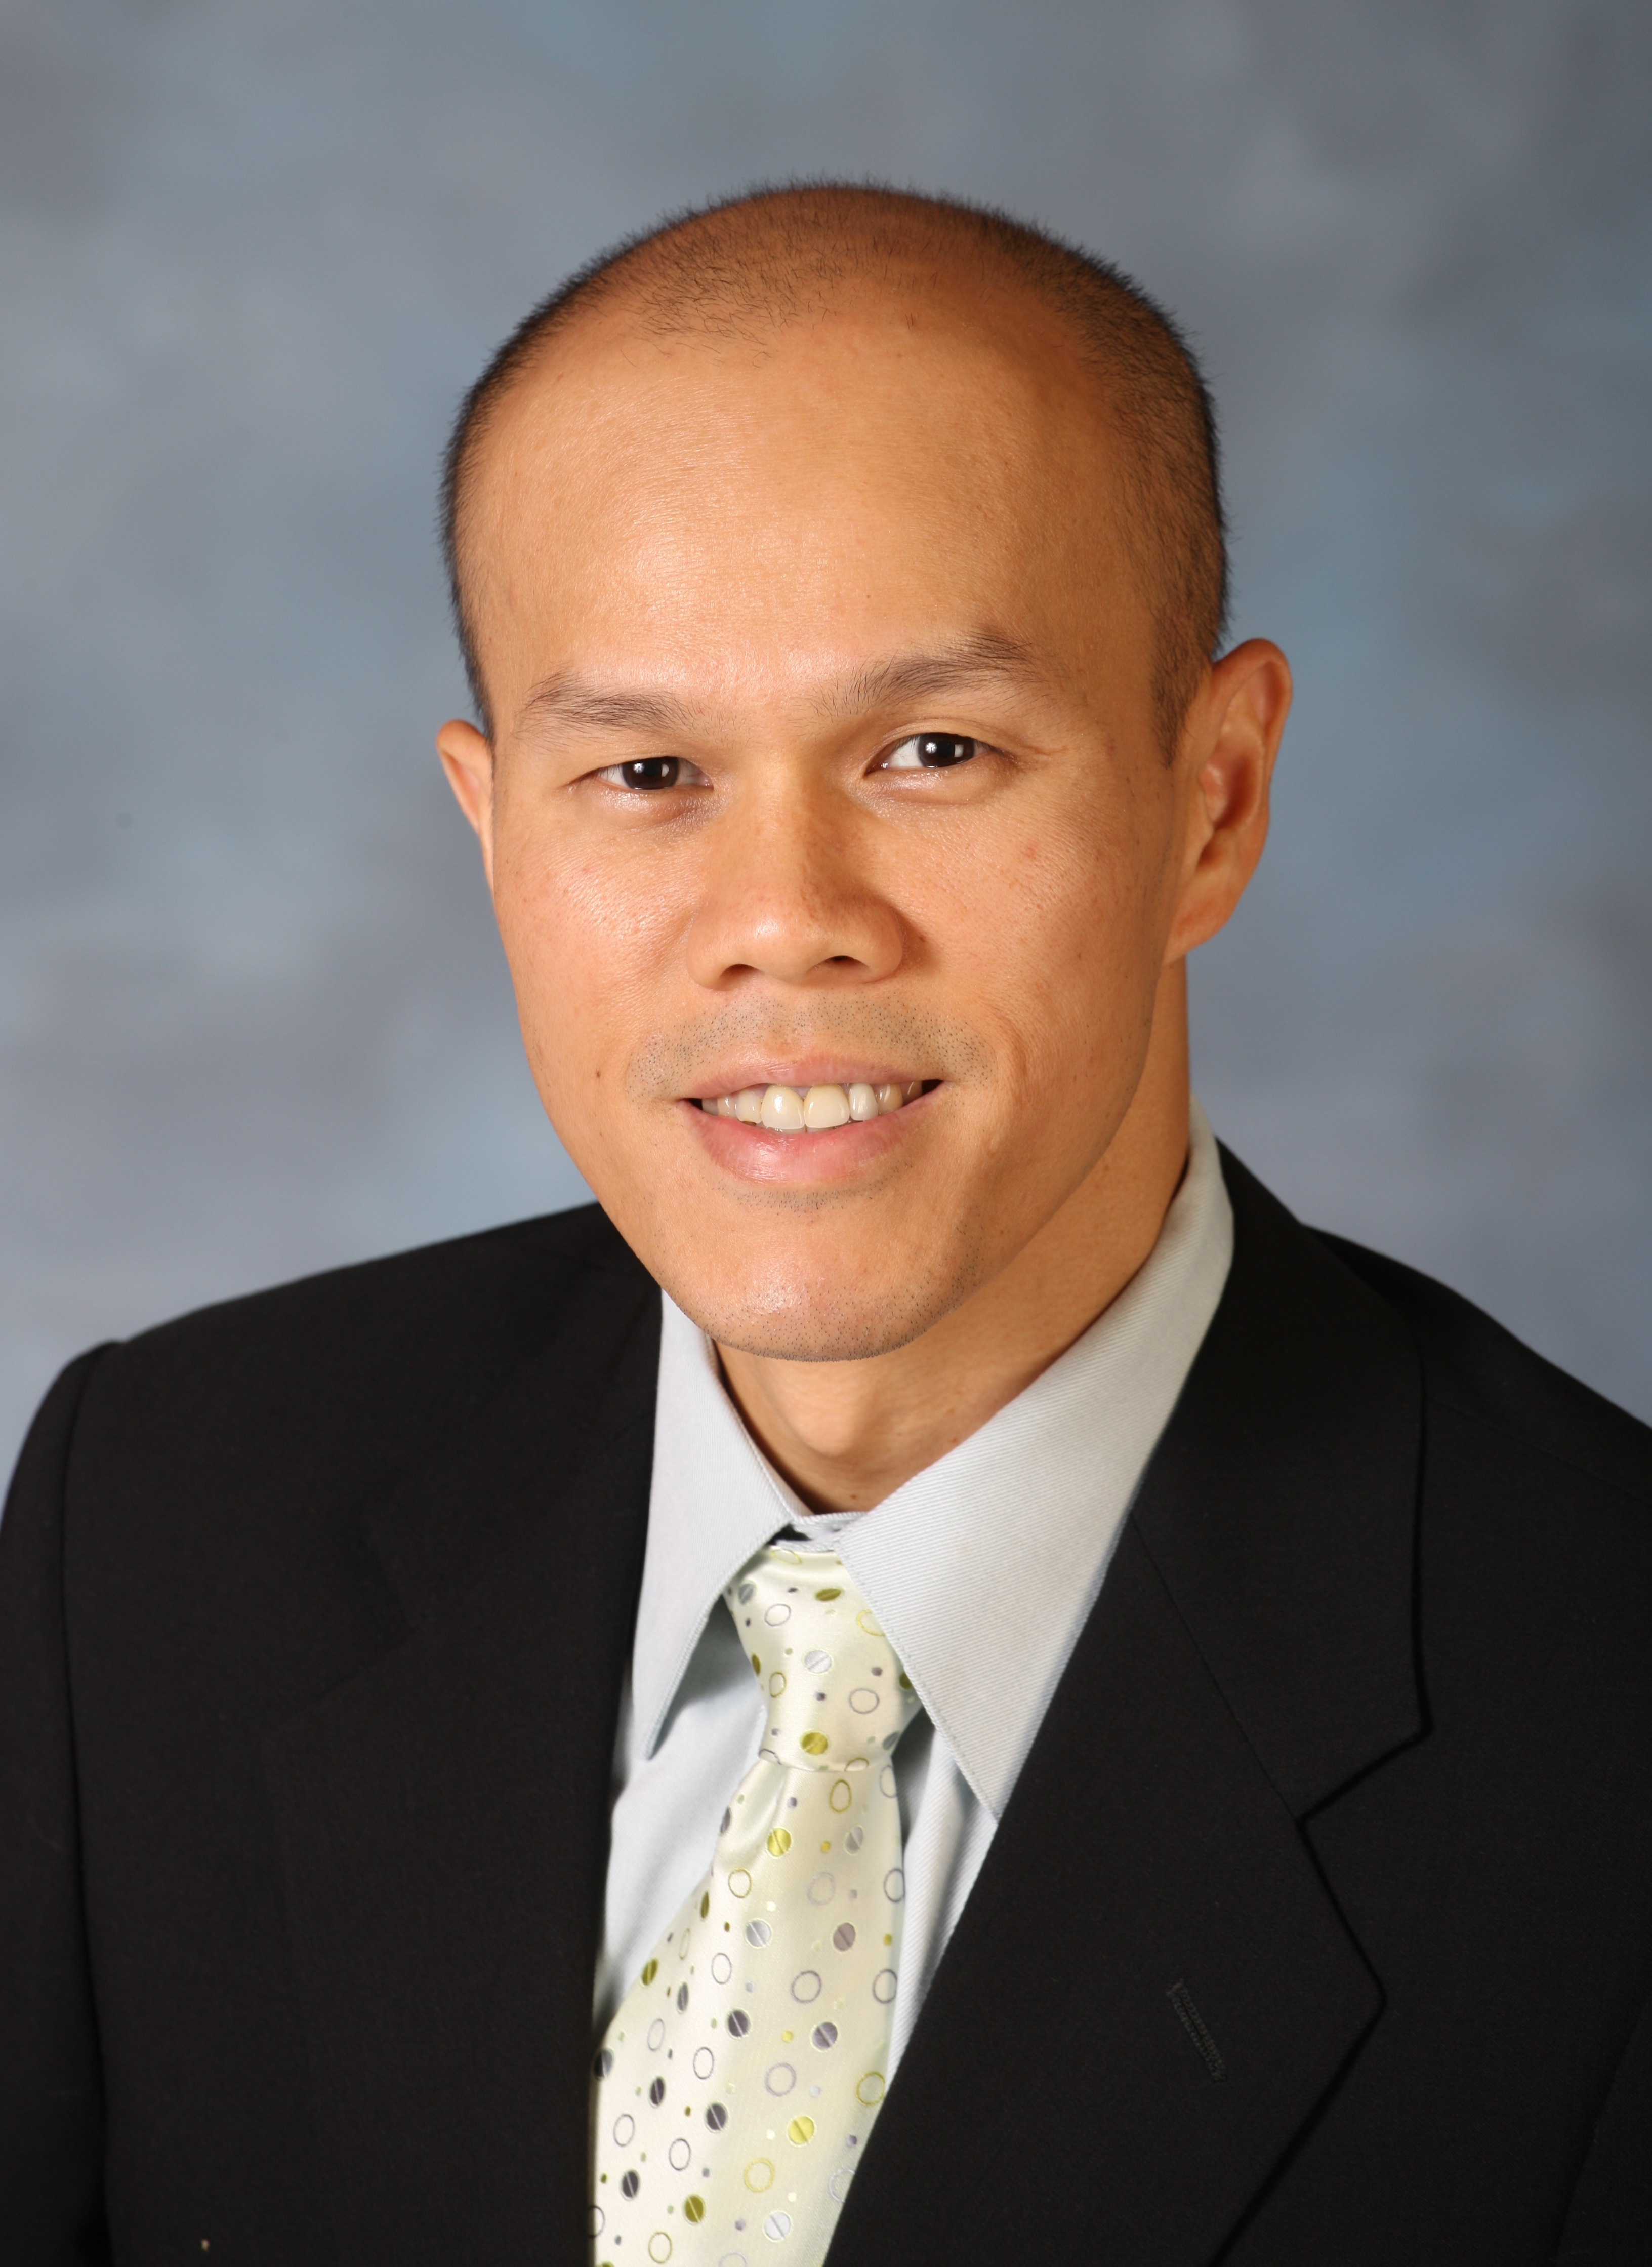 Photograph of Dr. Paul Lee